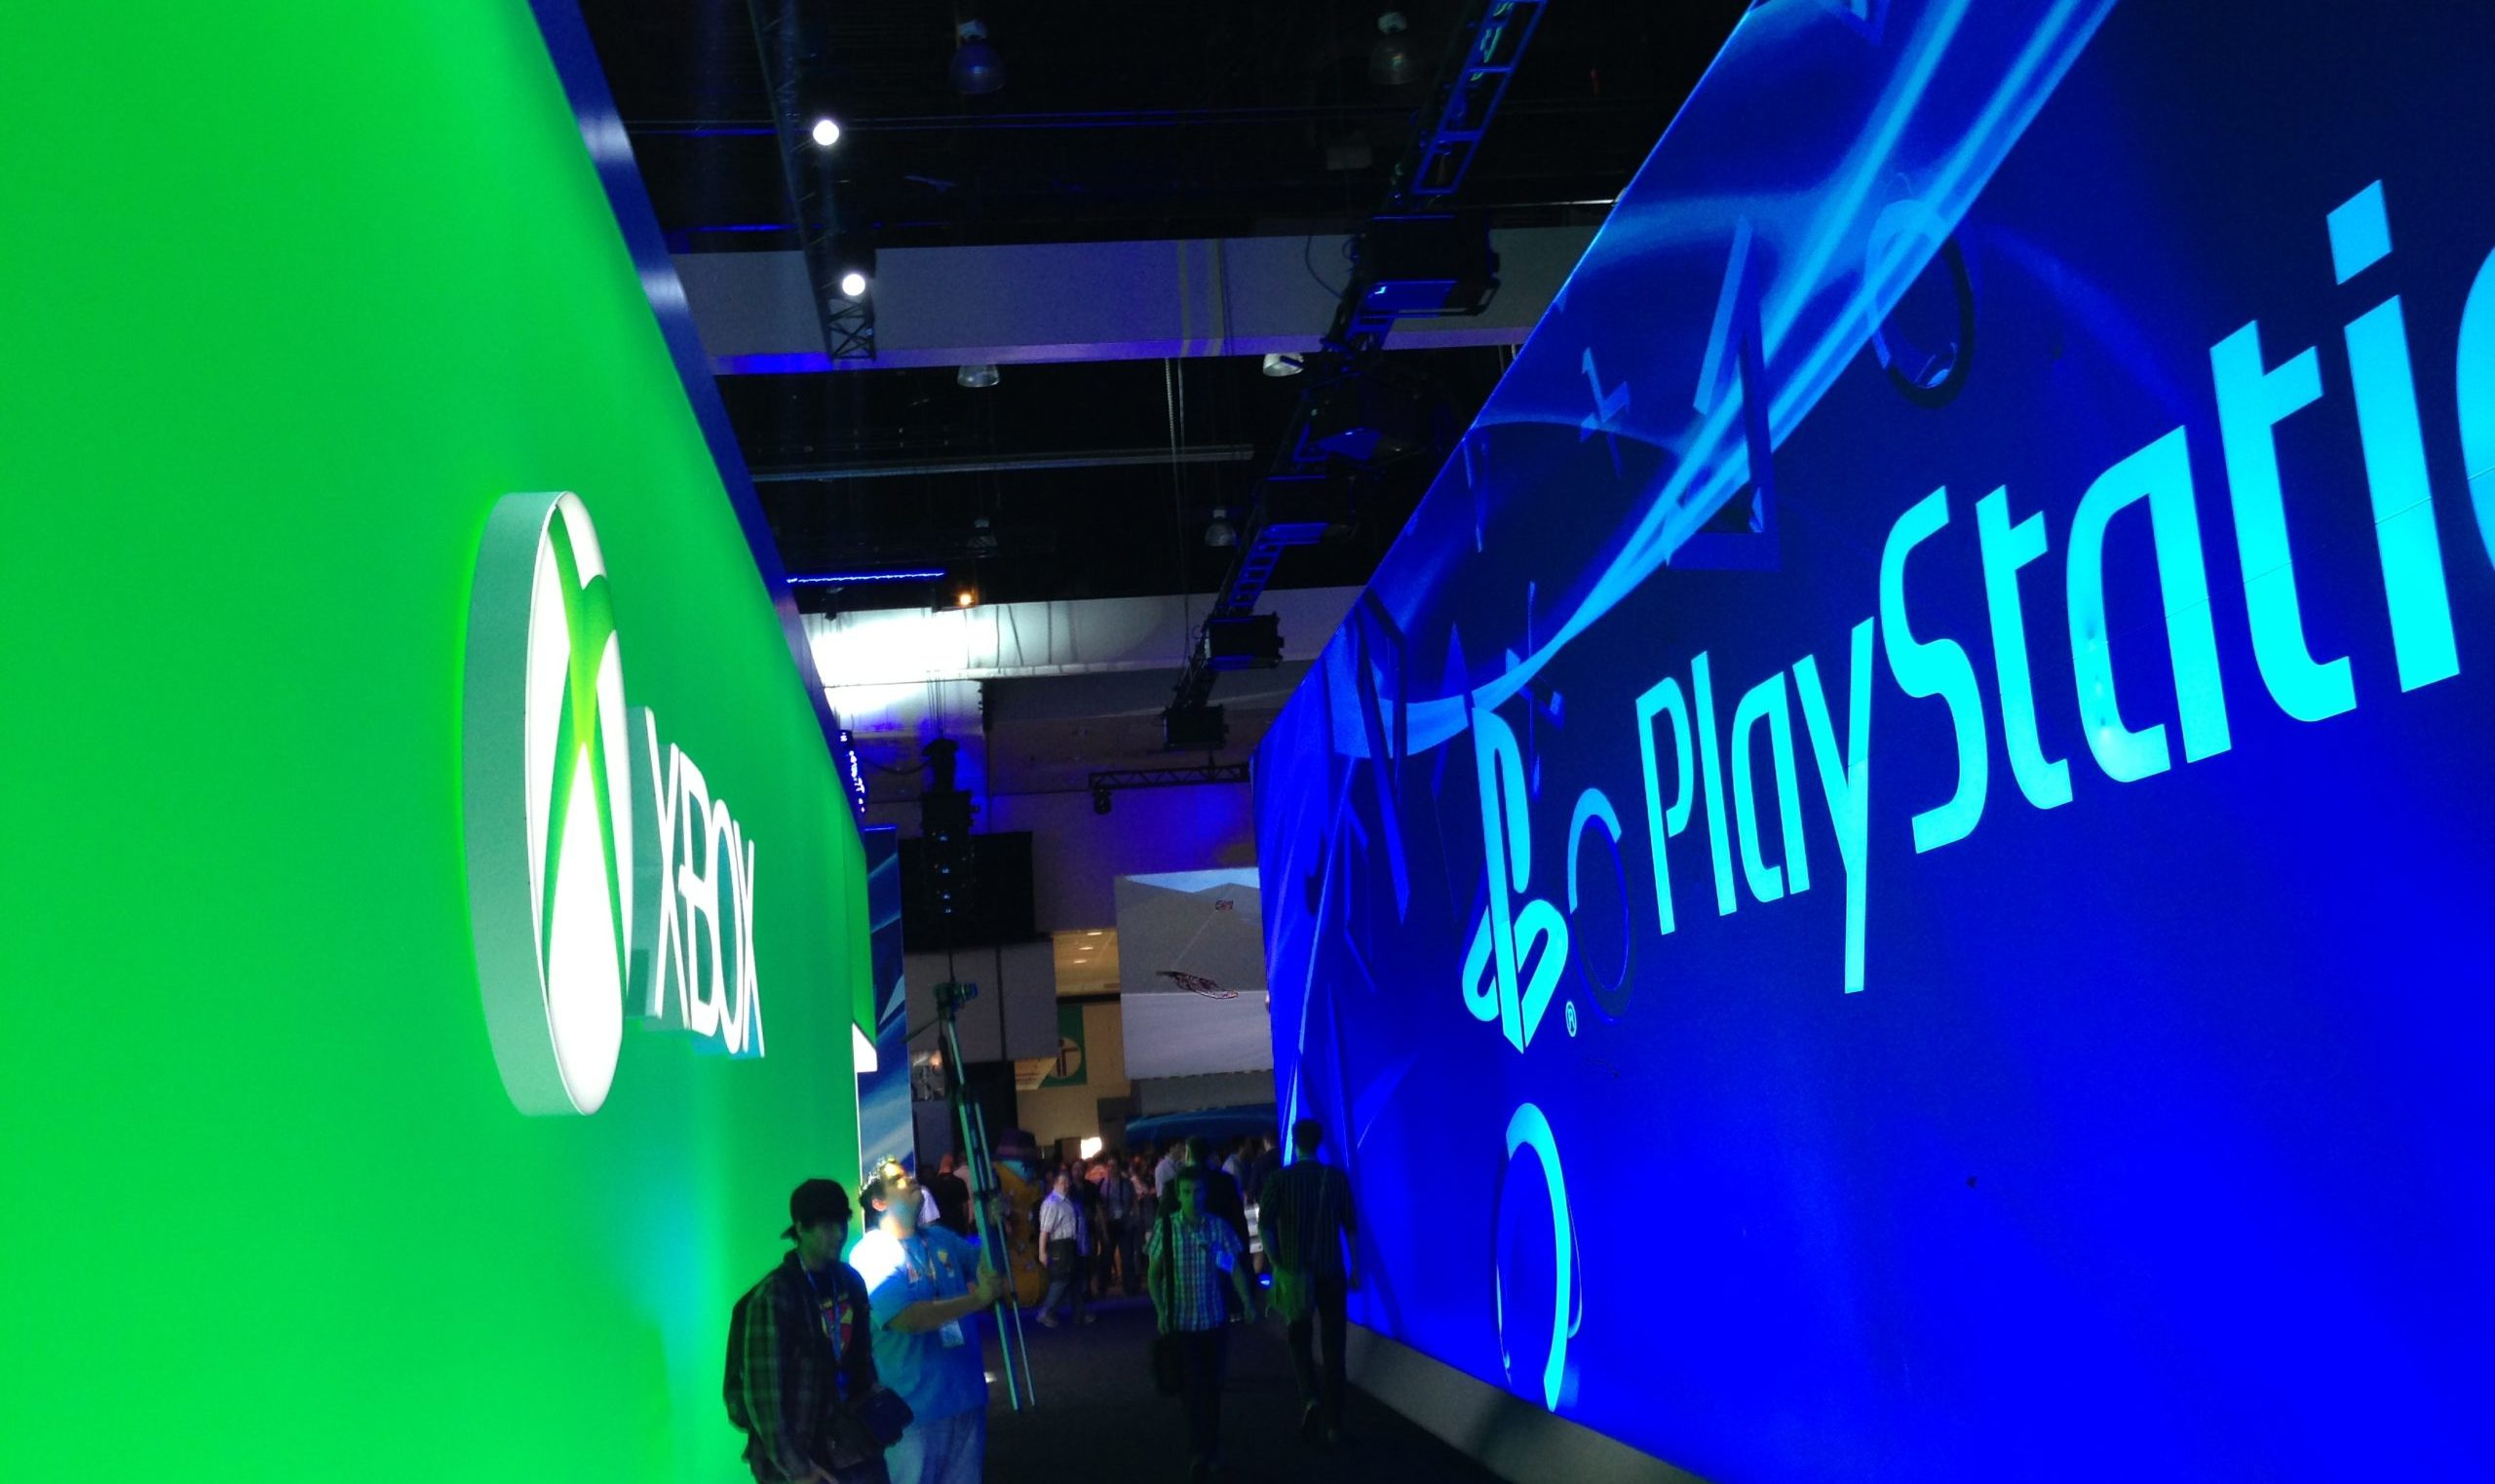 Microsoft, Amazon and Google are targeting 'big names' for buyouts, journalist claims - Video Games Chronicle